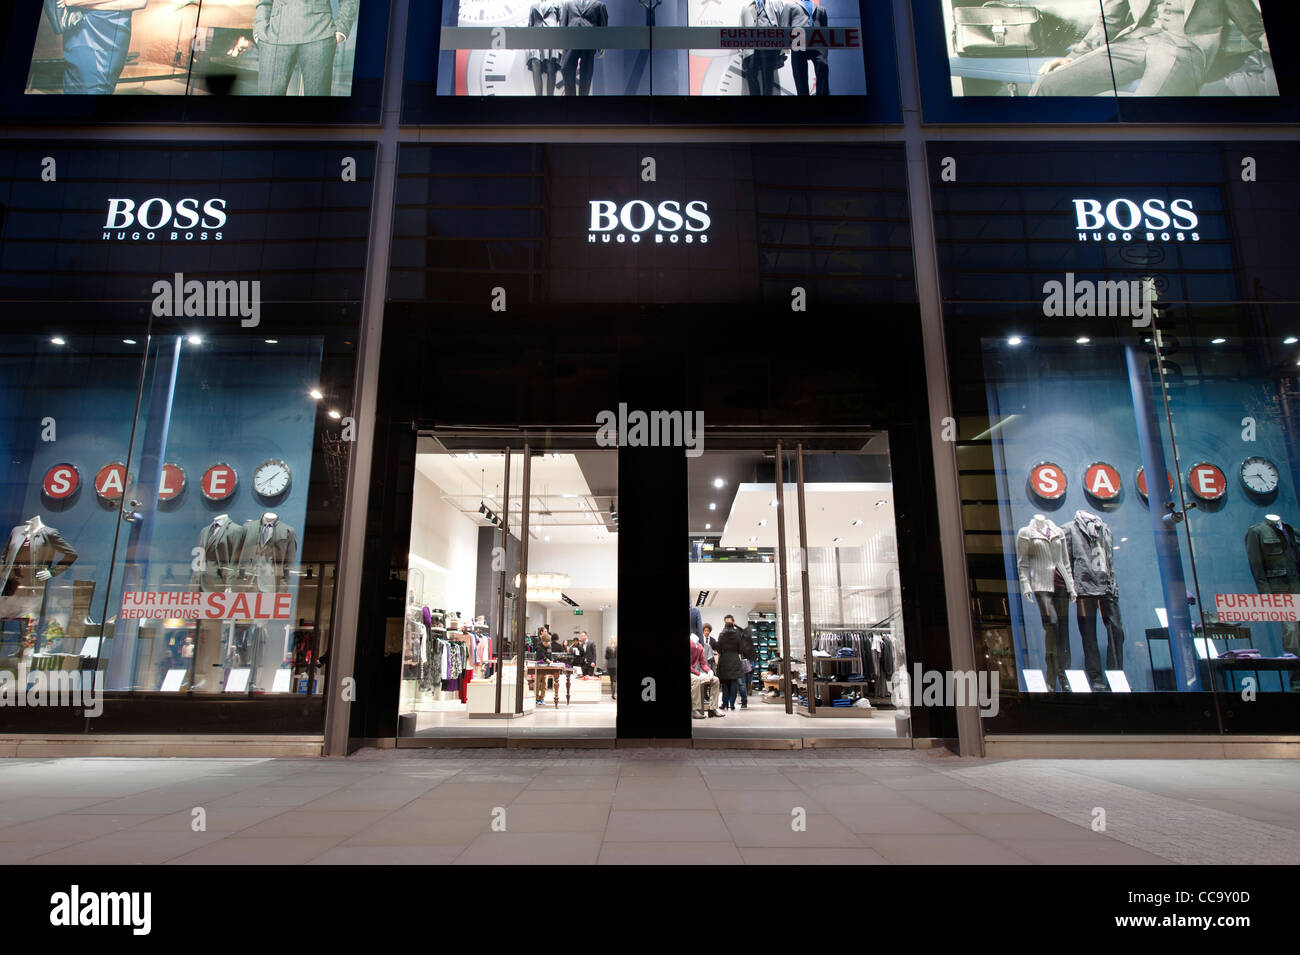 the hugo boss clothing shop located on new cathedral street in stock photo royalty free image. Black Bedroom Furniture Sets. Home Design Ideas